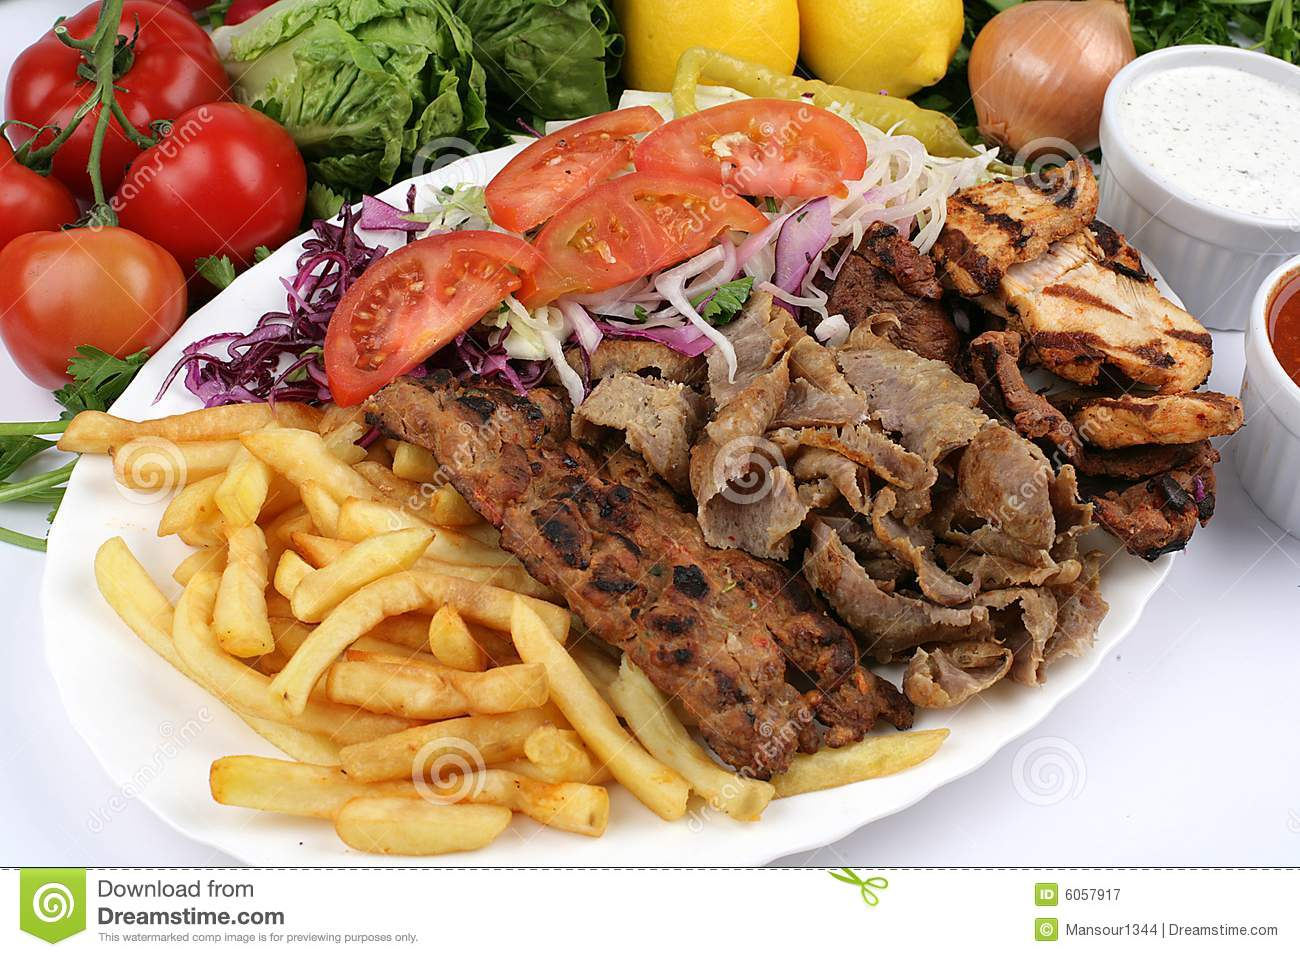 824 Turkish Mix Kebab Photos Free Royalty Free Stock Photos From Dreamstime